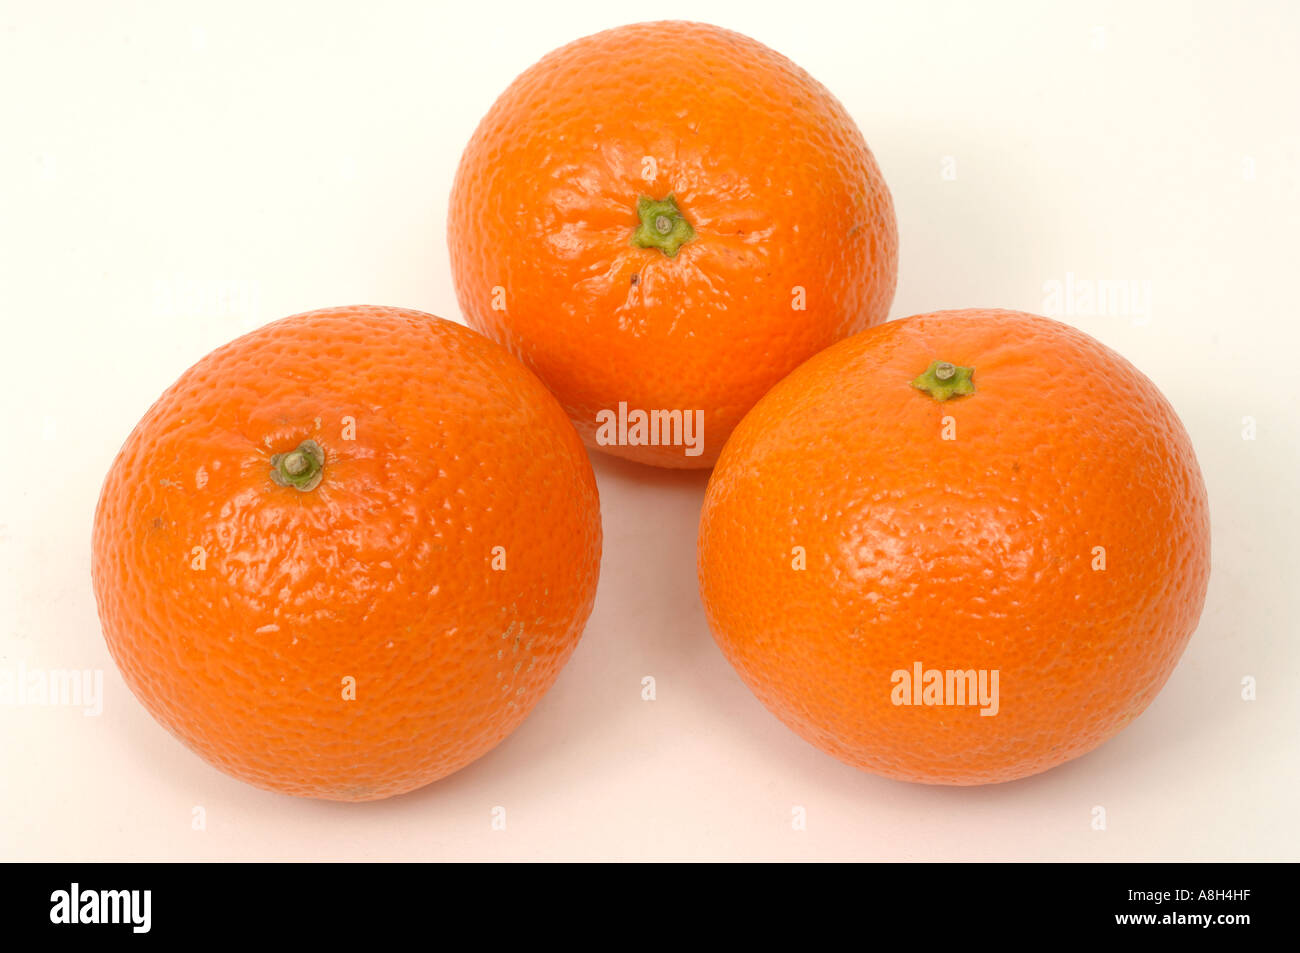 Satsumas supermarket bought and in normal shop condition - Stock Image